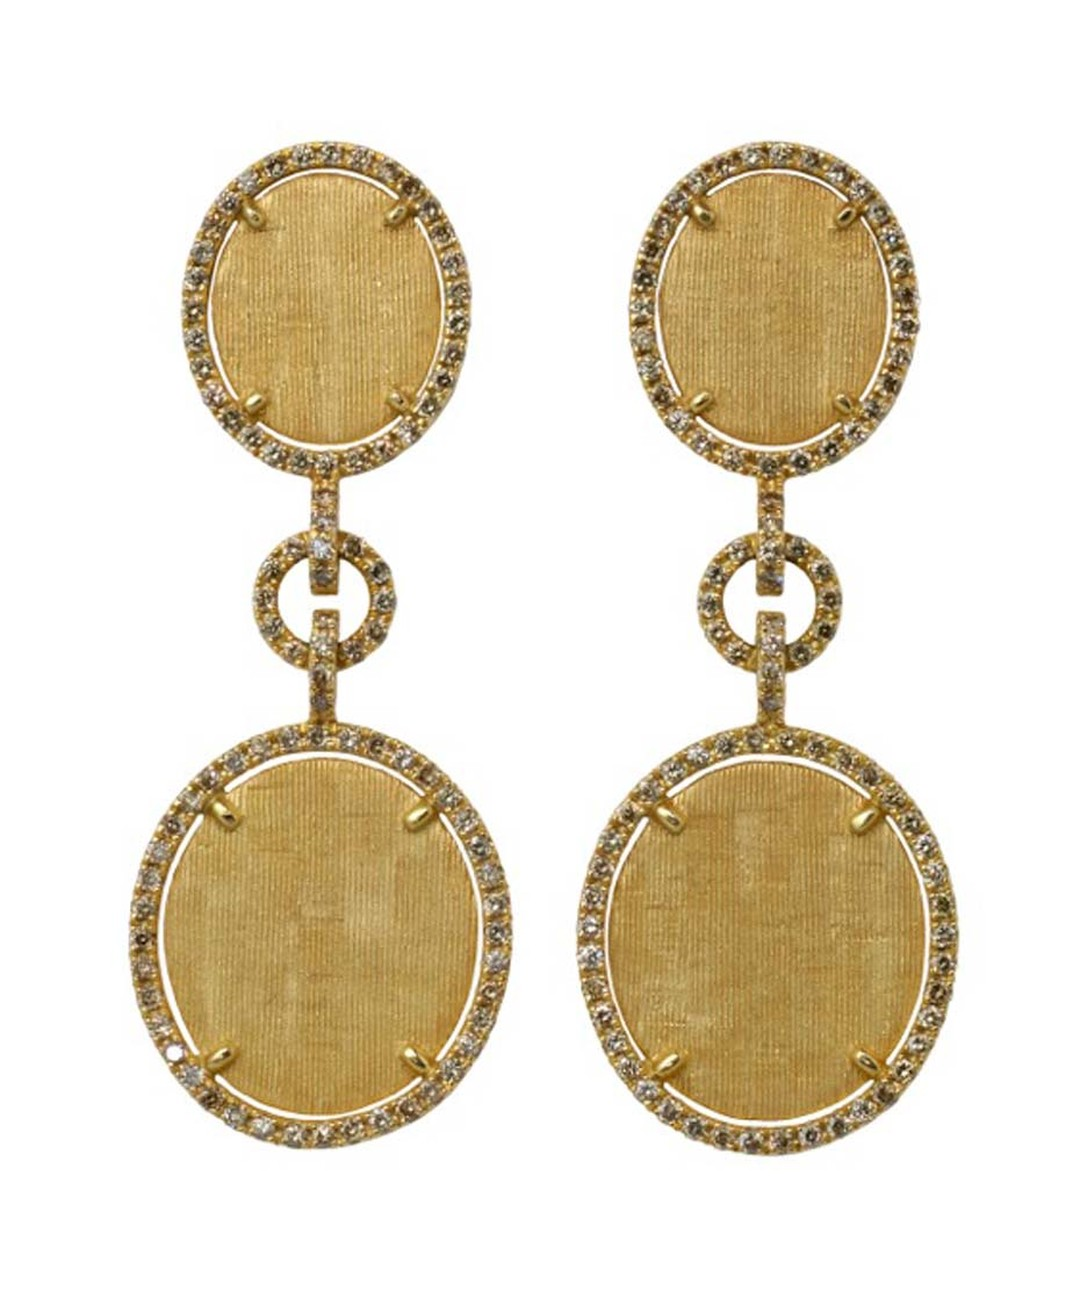 Eternamé Lunaria double earrings in yellow gold, set with brown diamonds.